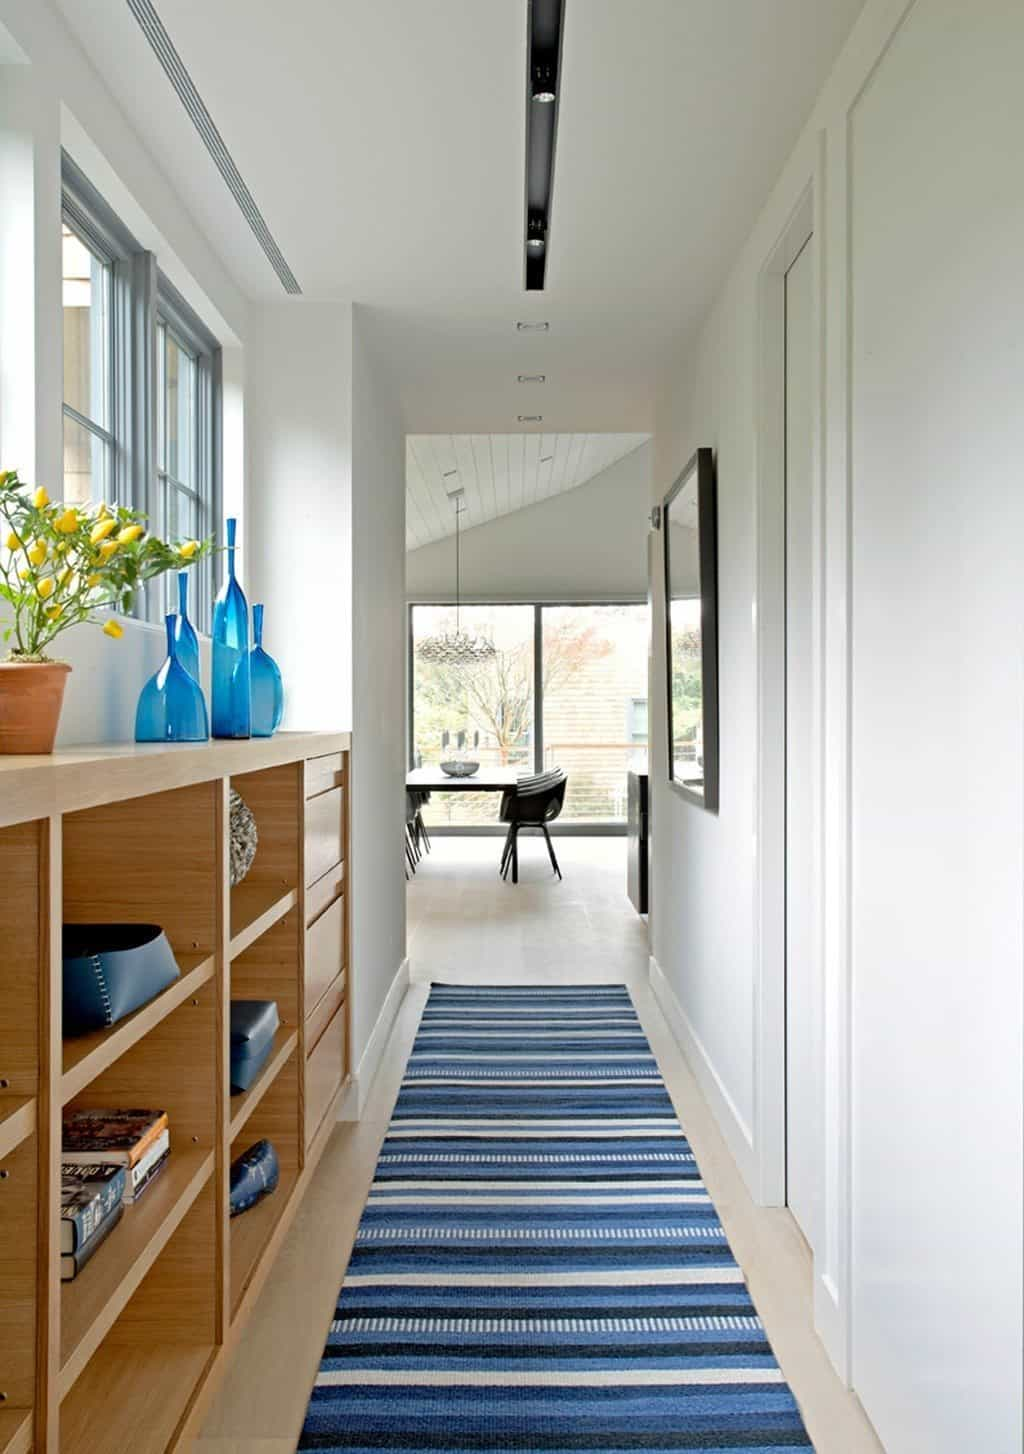 Sagaponack-Cottage-Blaze Makoid Architecture-10-1 Kindesign